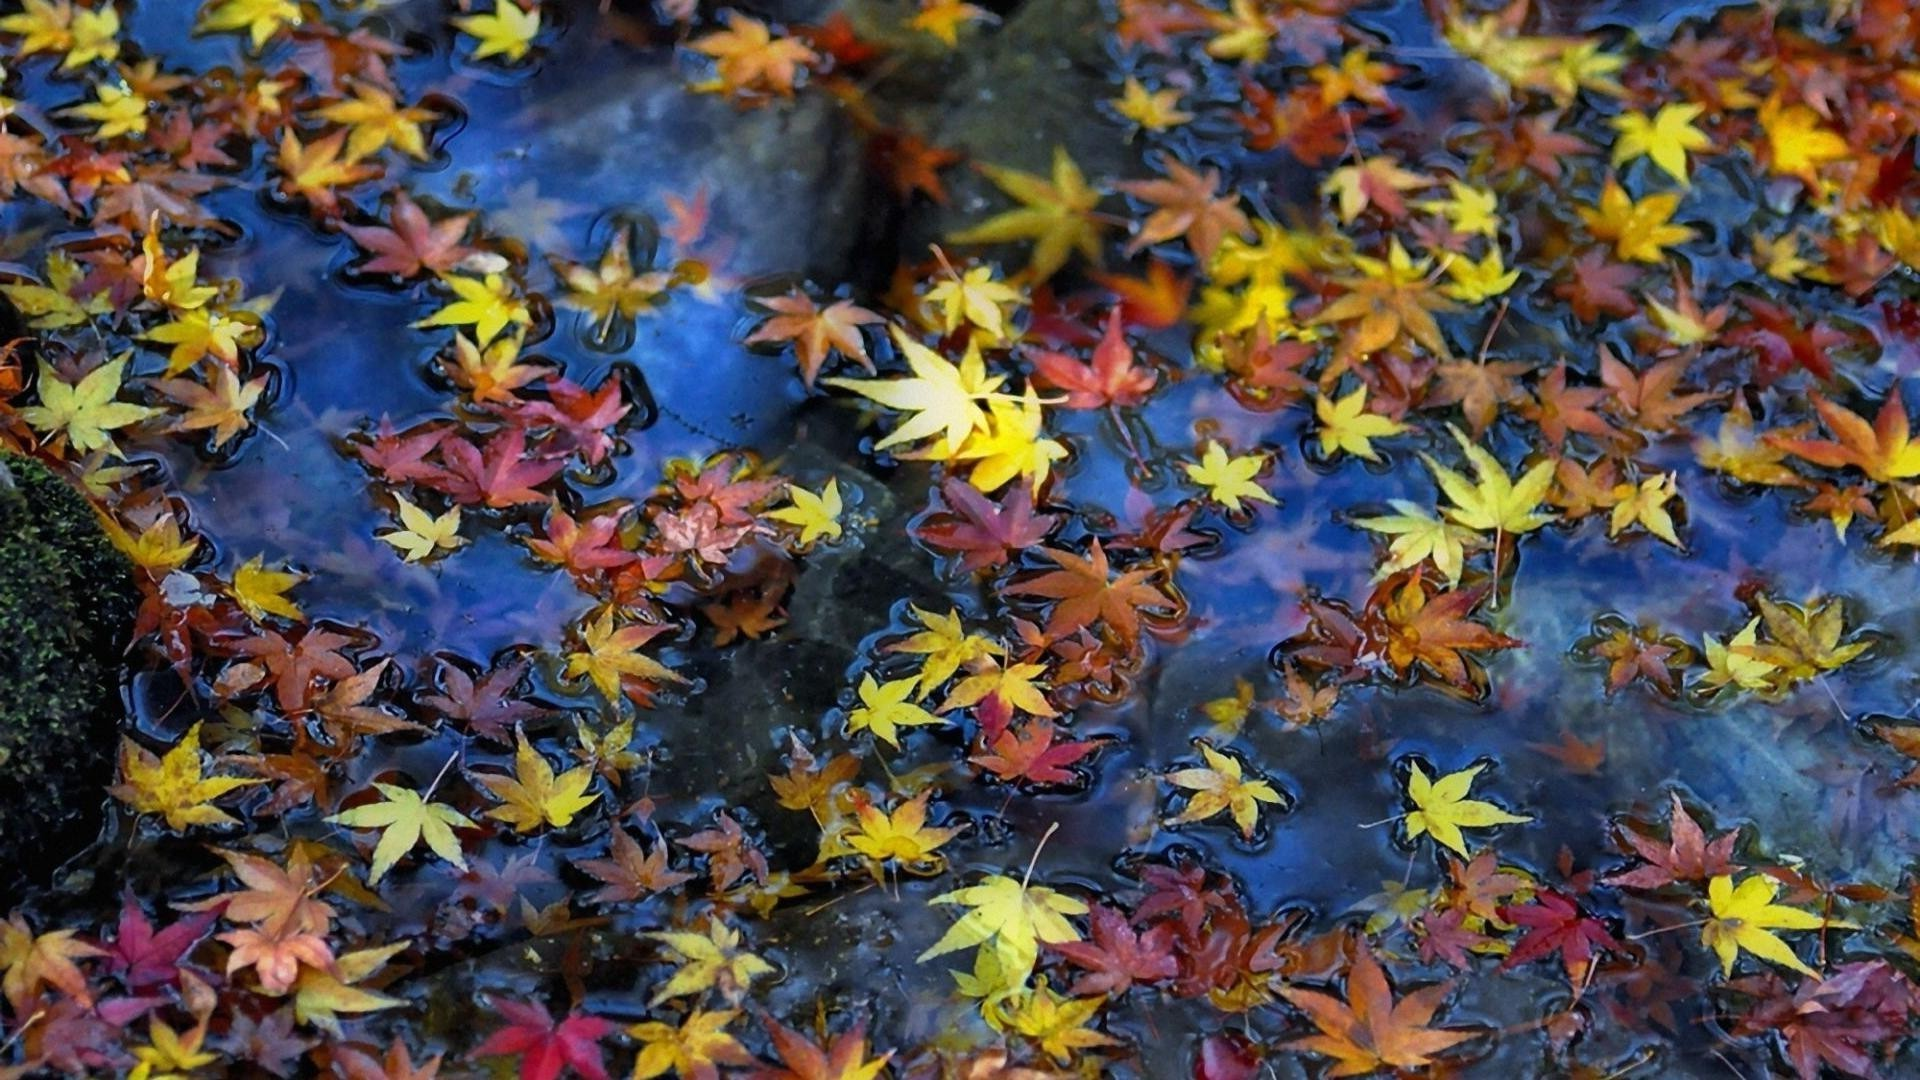 leaves leaf fall maple season nature color flora bright park tree outdoors wood garden vibrant desktop